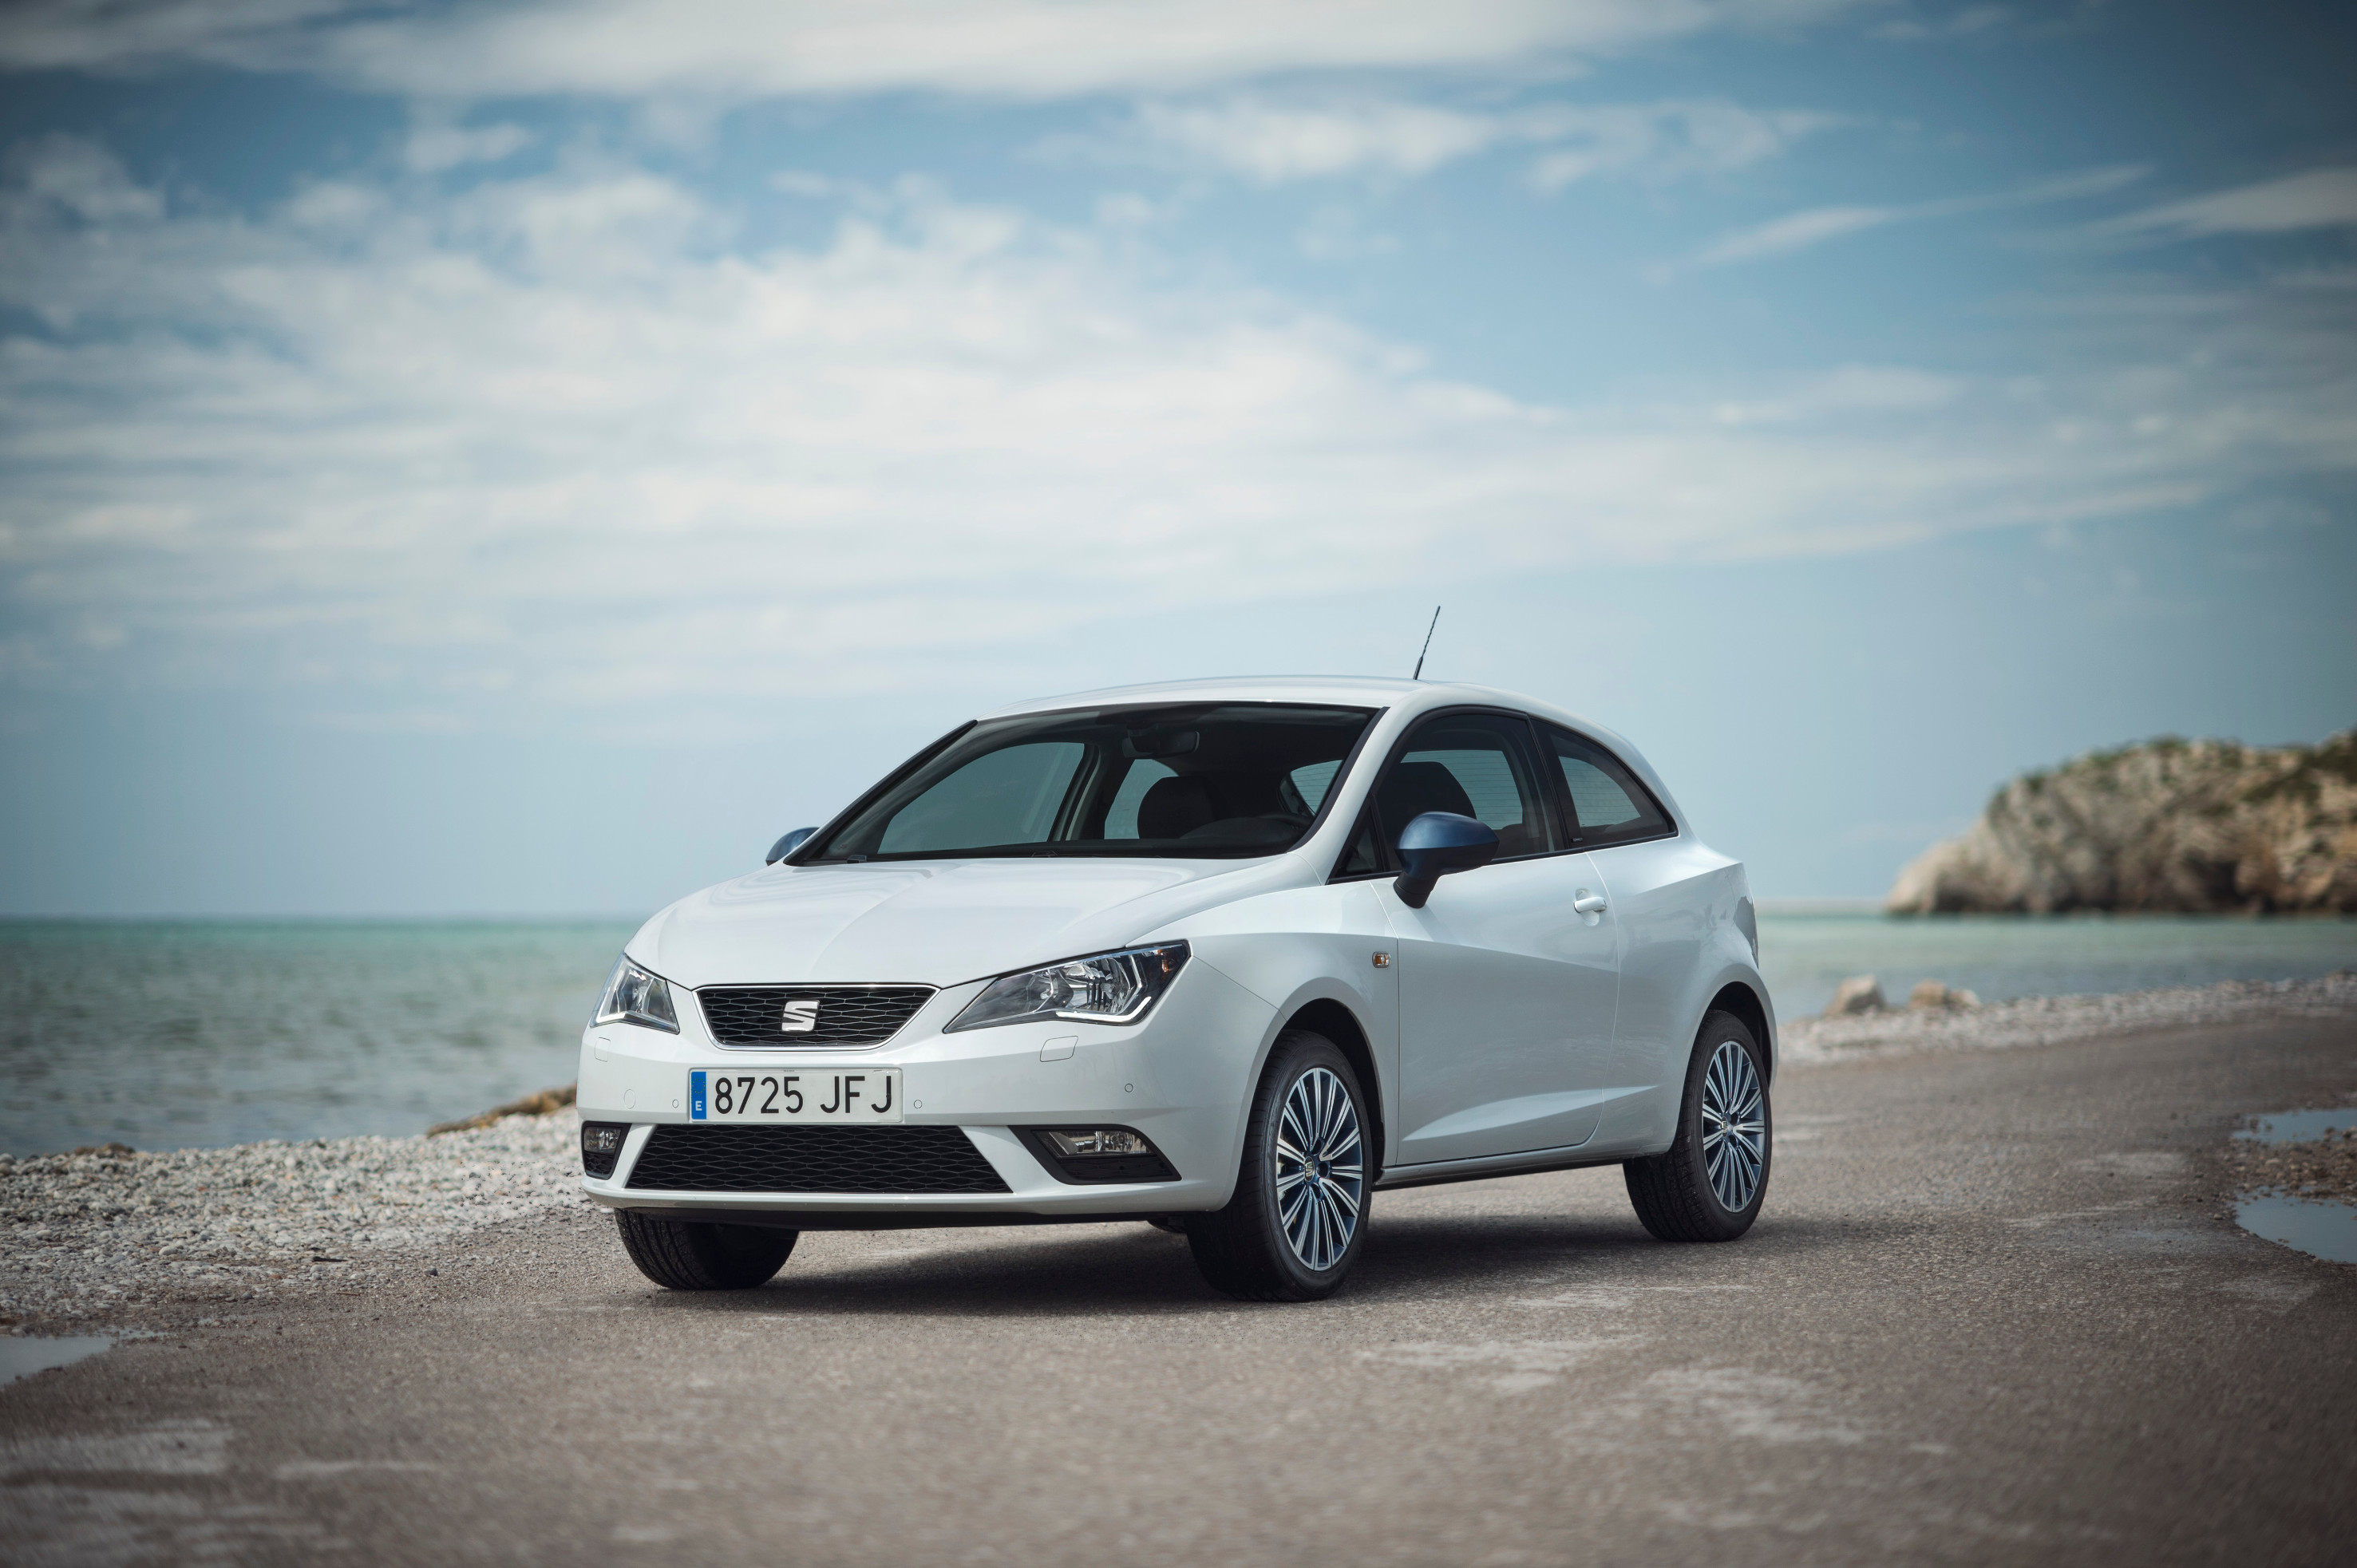 Nuova SEAT Ibiza, Technology to enjoy